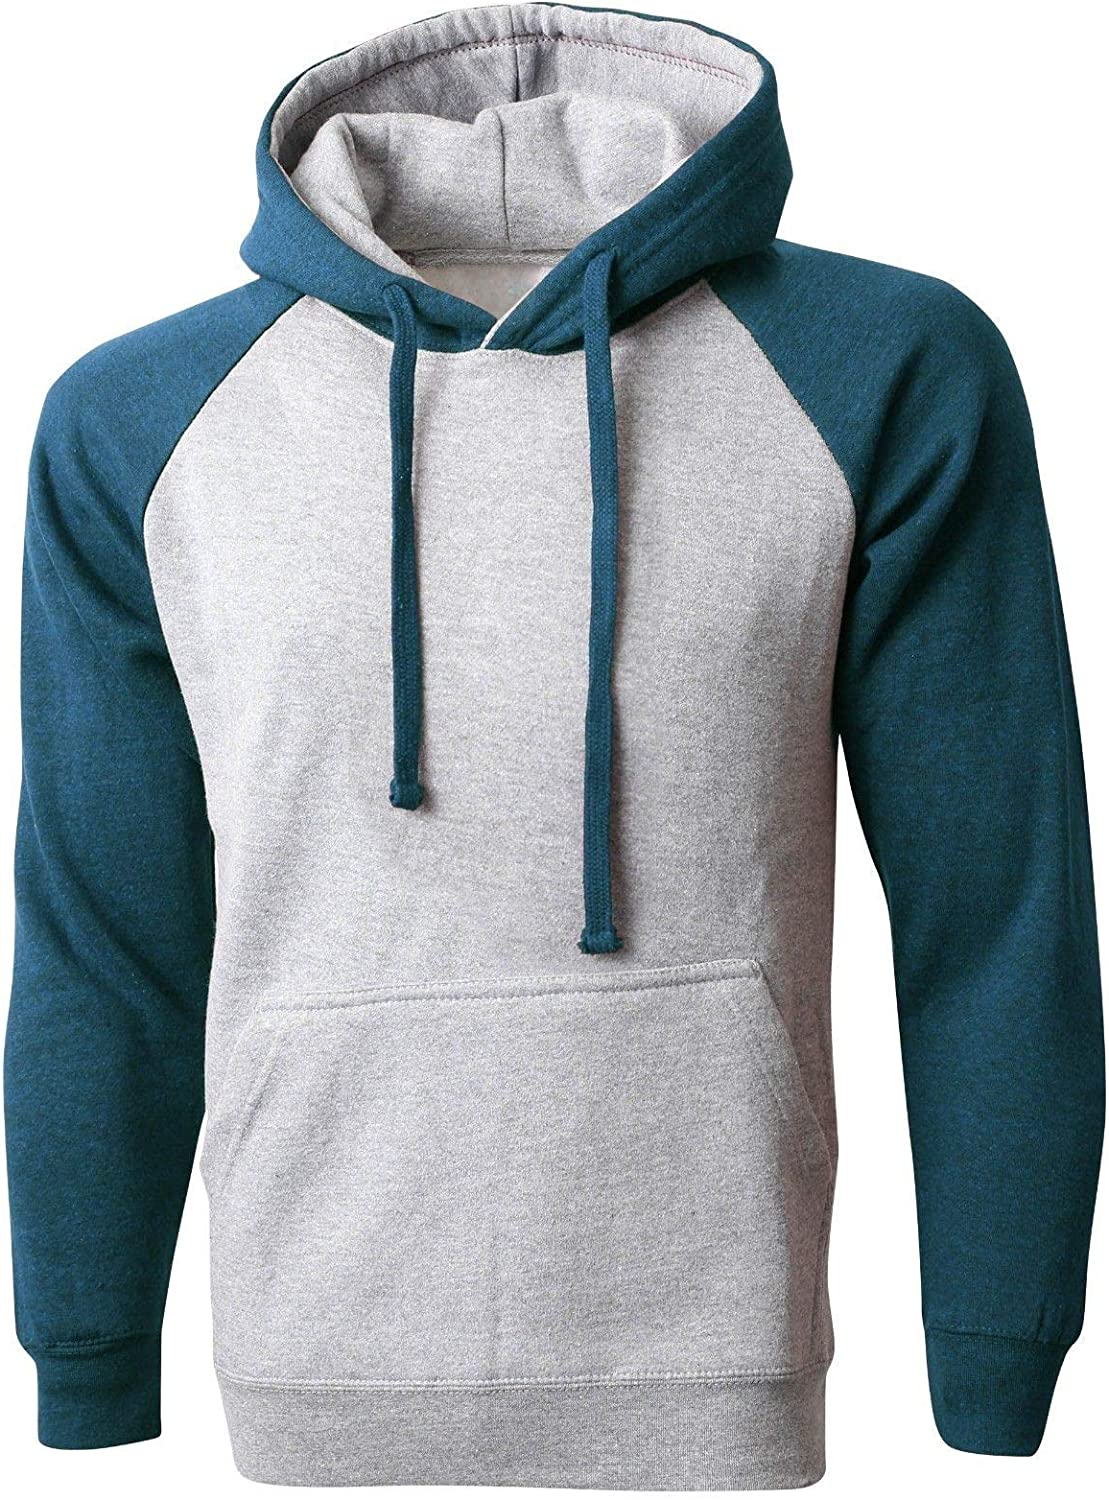 Heather Gray//Cyan Hoodie Raglan Premium Pullover Sweater Tee Shirts Contrast Heavy Long #SHAS